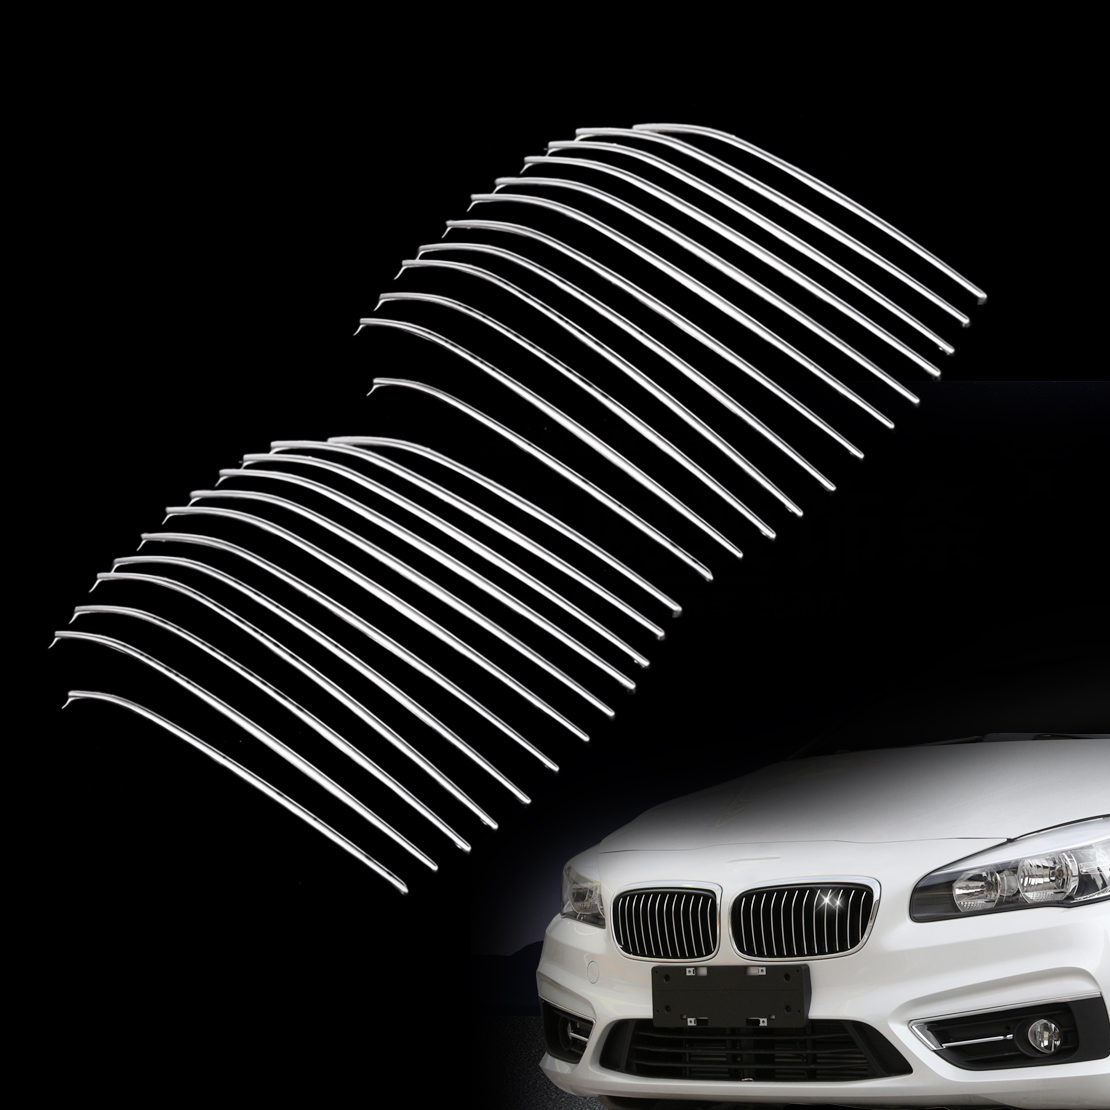 DWCX 24x Car Styling Chrome Plastic Plated Front Bumper Kidney Hood Grill Grille Cover Trim for 12 Bar BMW 218i 220i 2015 2016